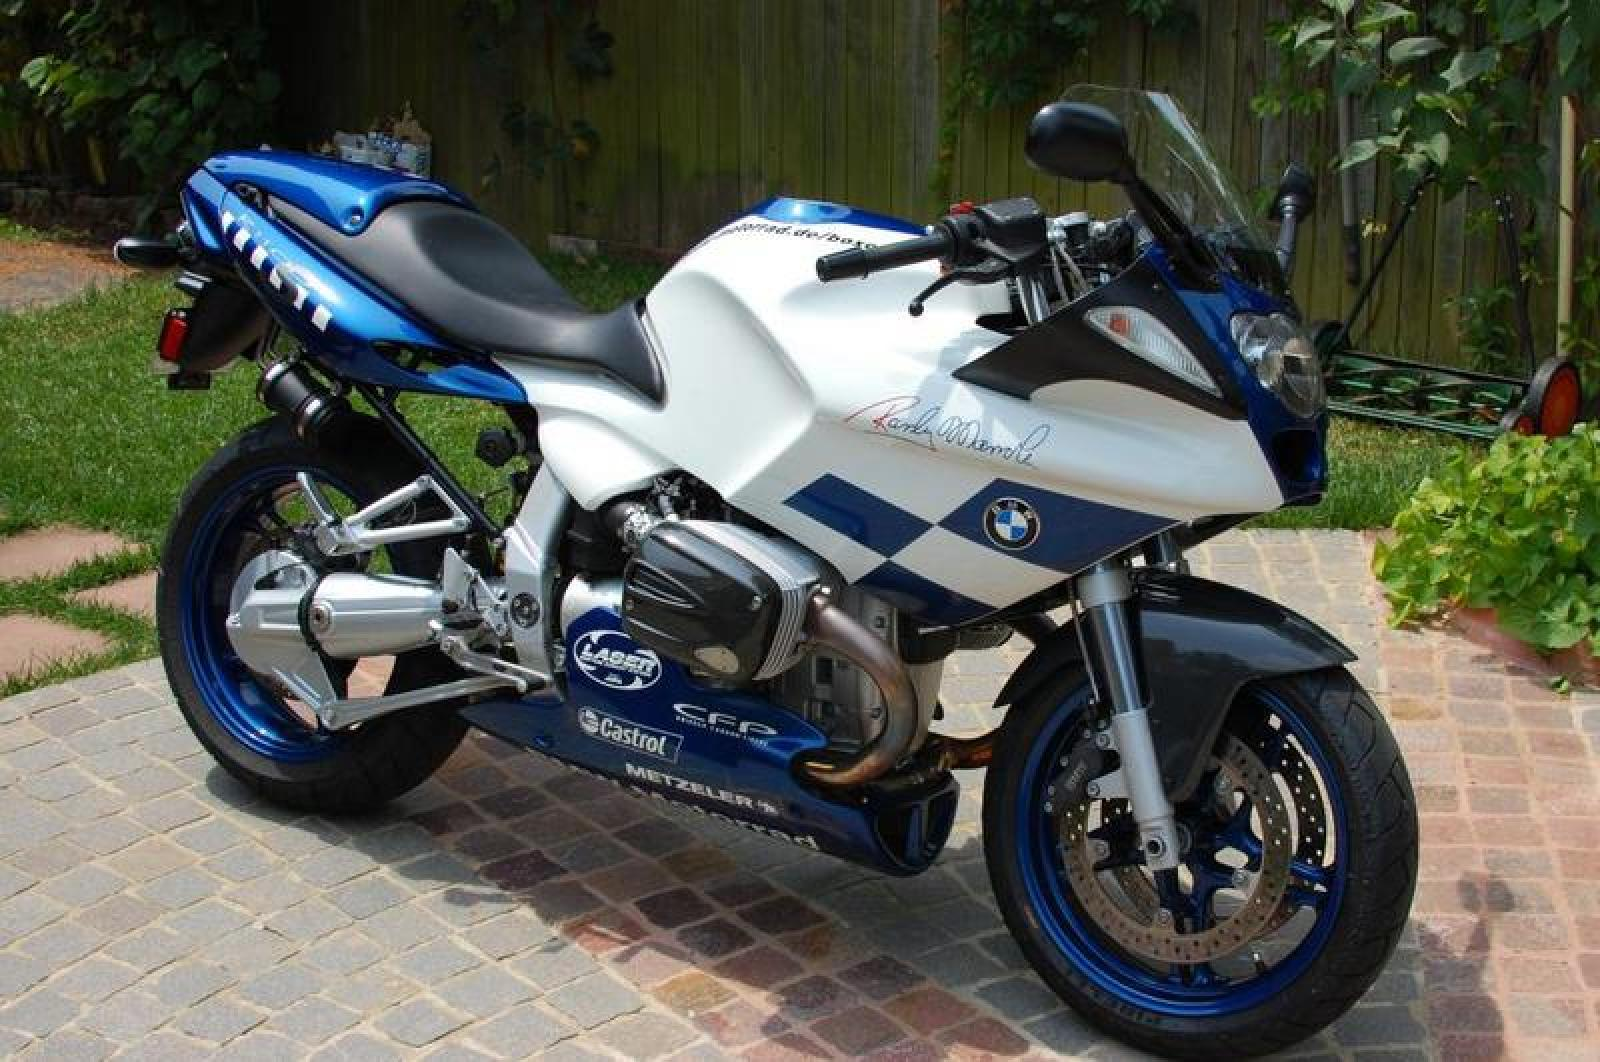 BMW R1100S BoxerCup Replika images #12991